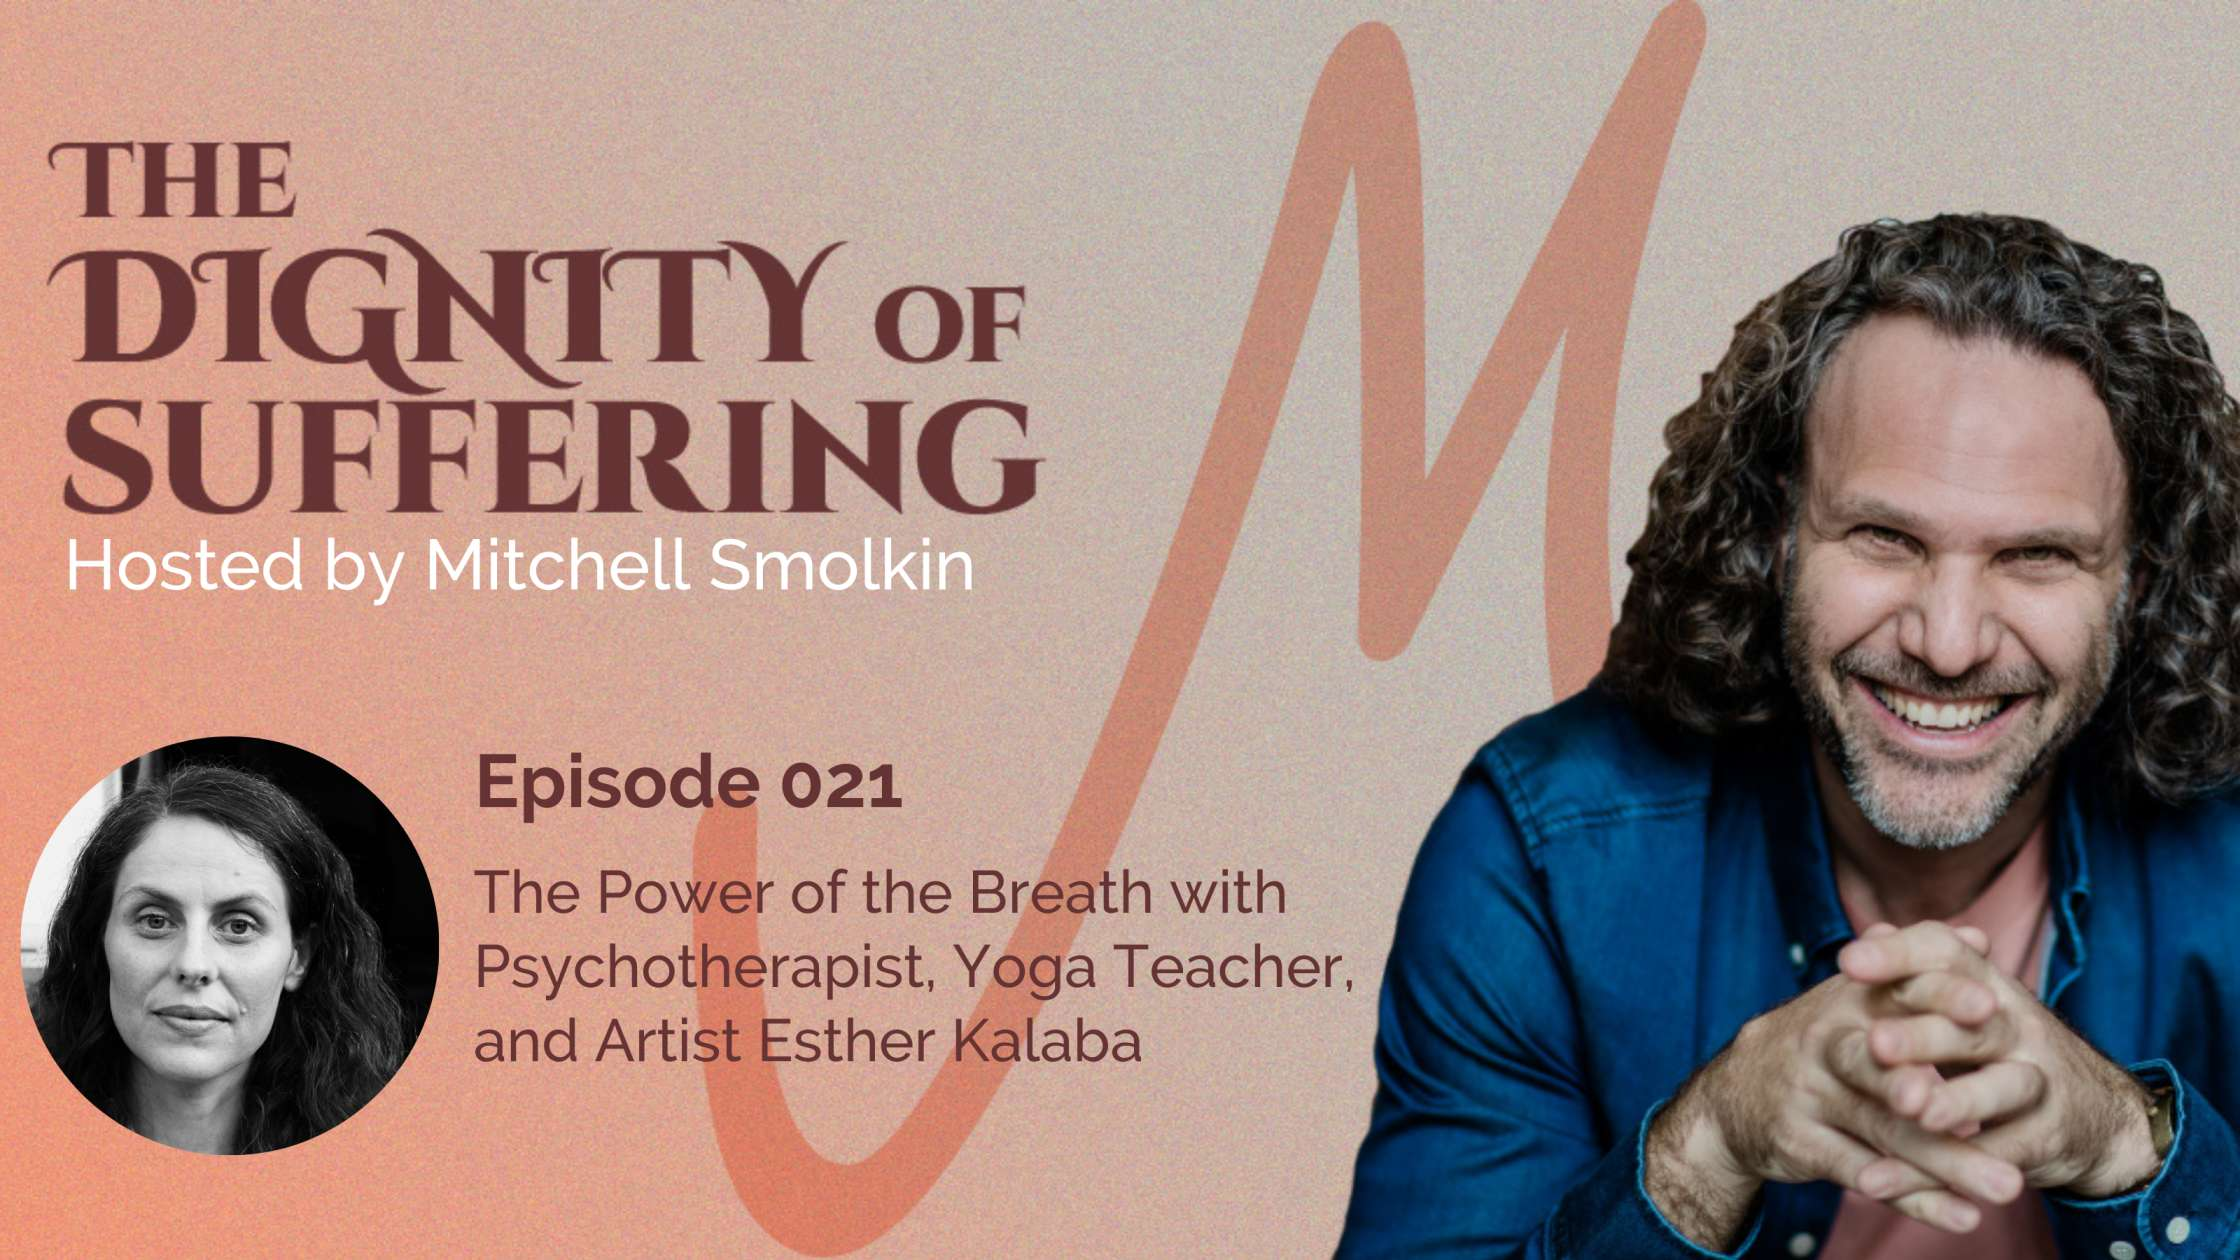 Episode 021: The Power of the Breath with Psychotherapist, Yoga Teacher, and Artist Esther Kalaba